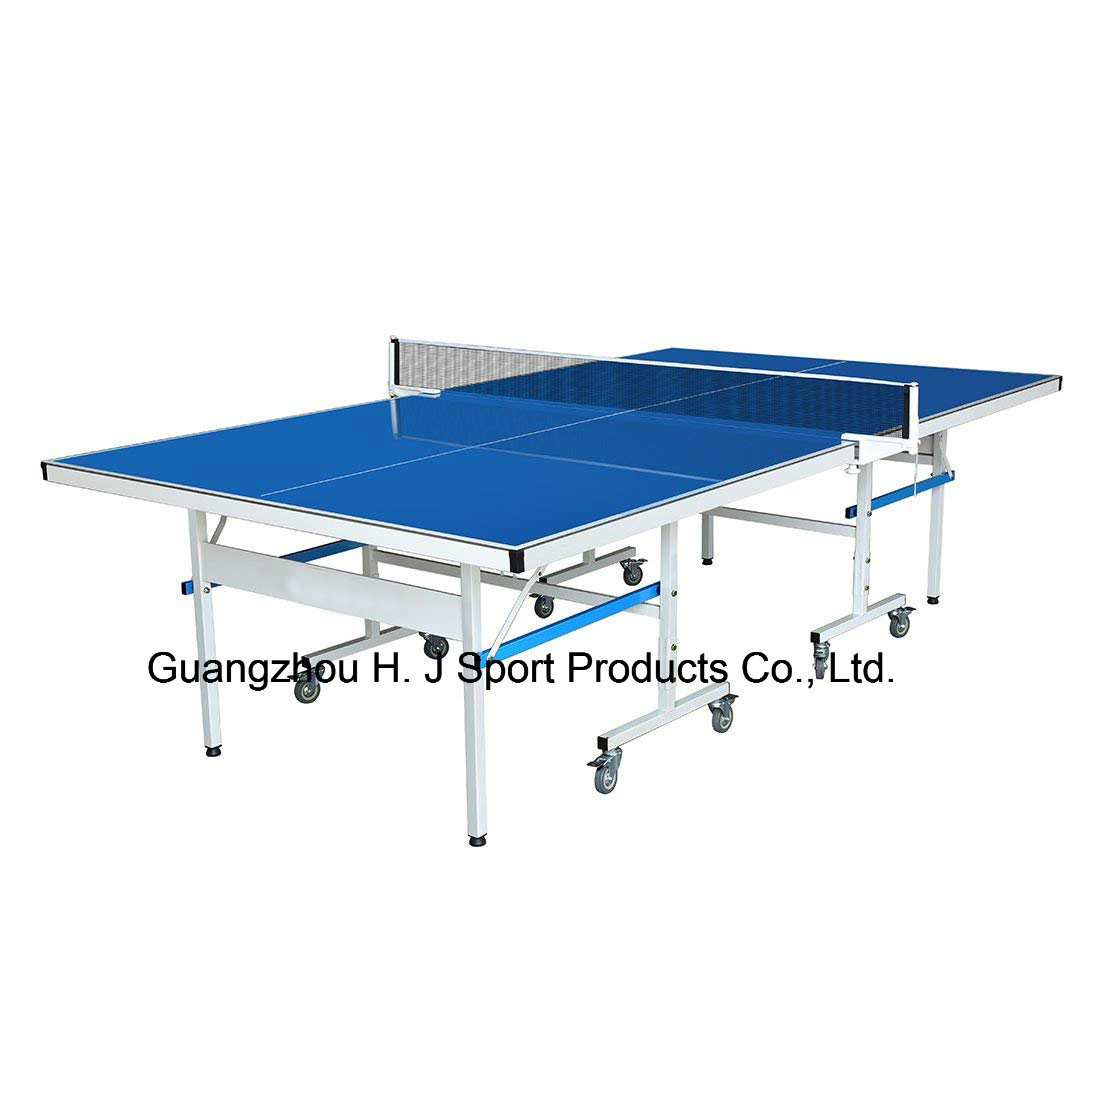 Hot Item Indoor Outdoor Folding Rollaway Table Tennis Table Full Size Ping Pong Table Blue